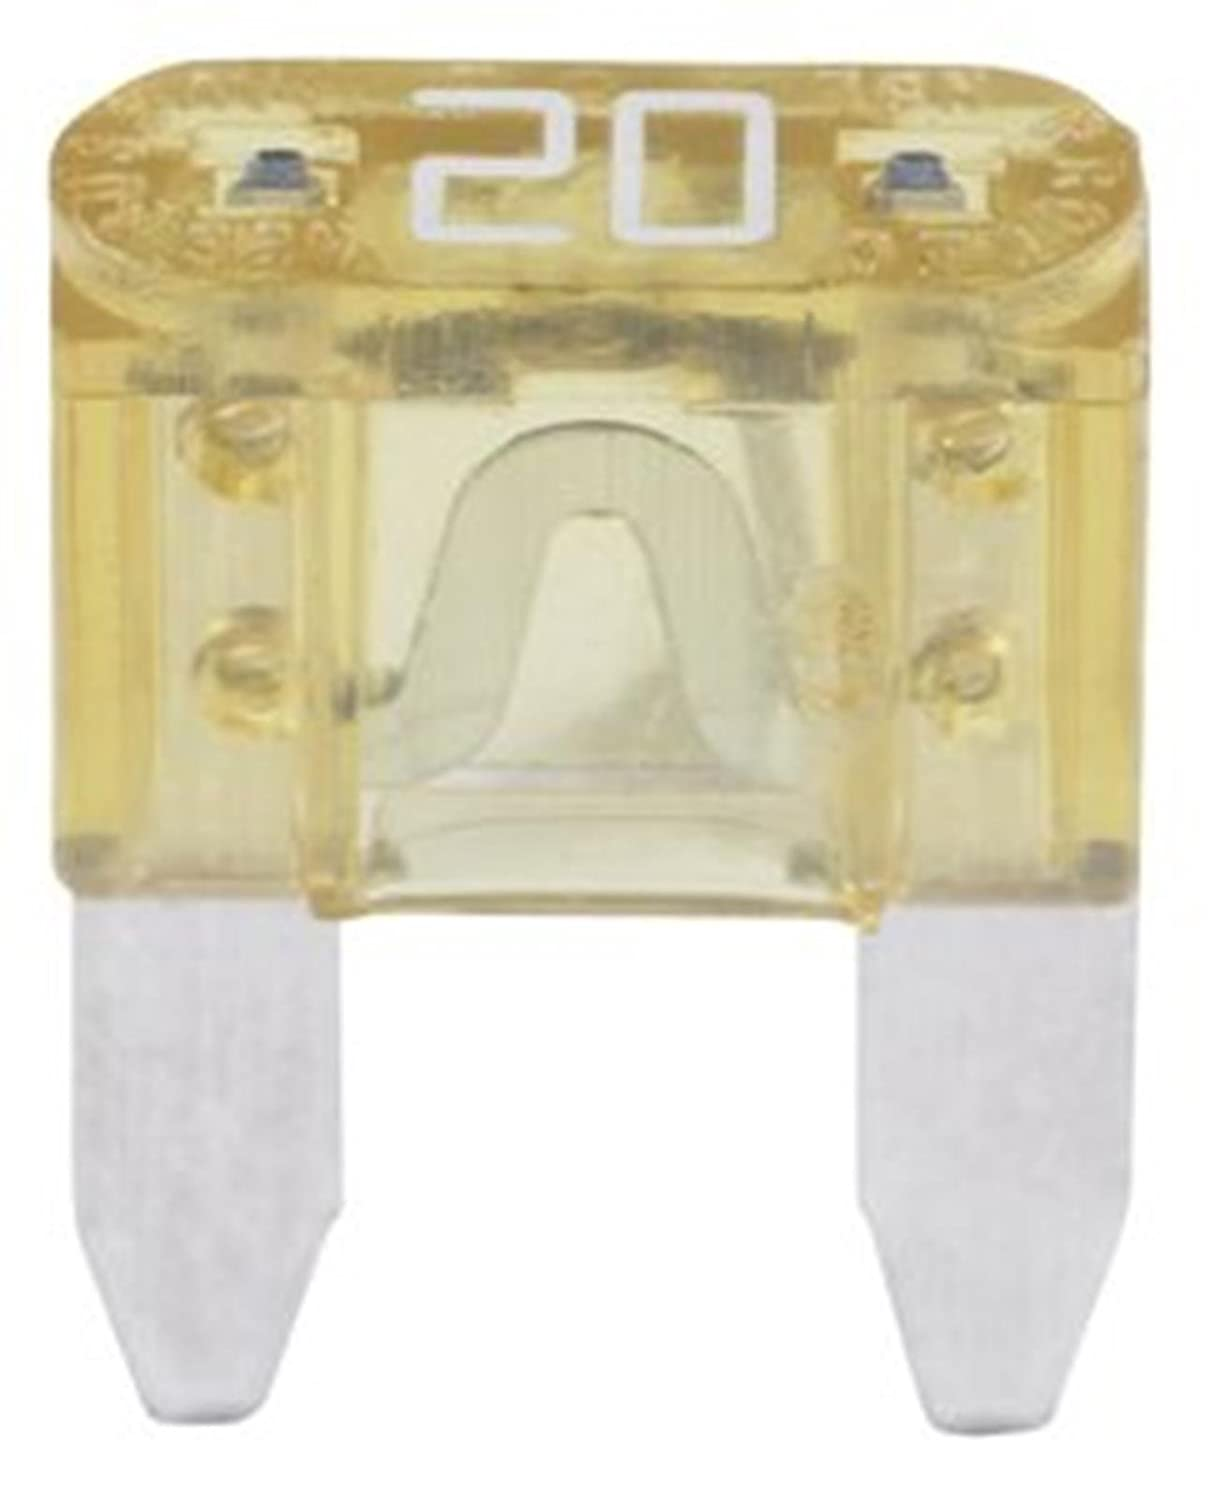 100 Qty. ATM 20A Blade Automotive Fuse 20 Amp vehicle automotive blade fuse holder with a line of high quality waterproof fuse holder